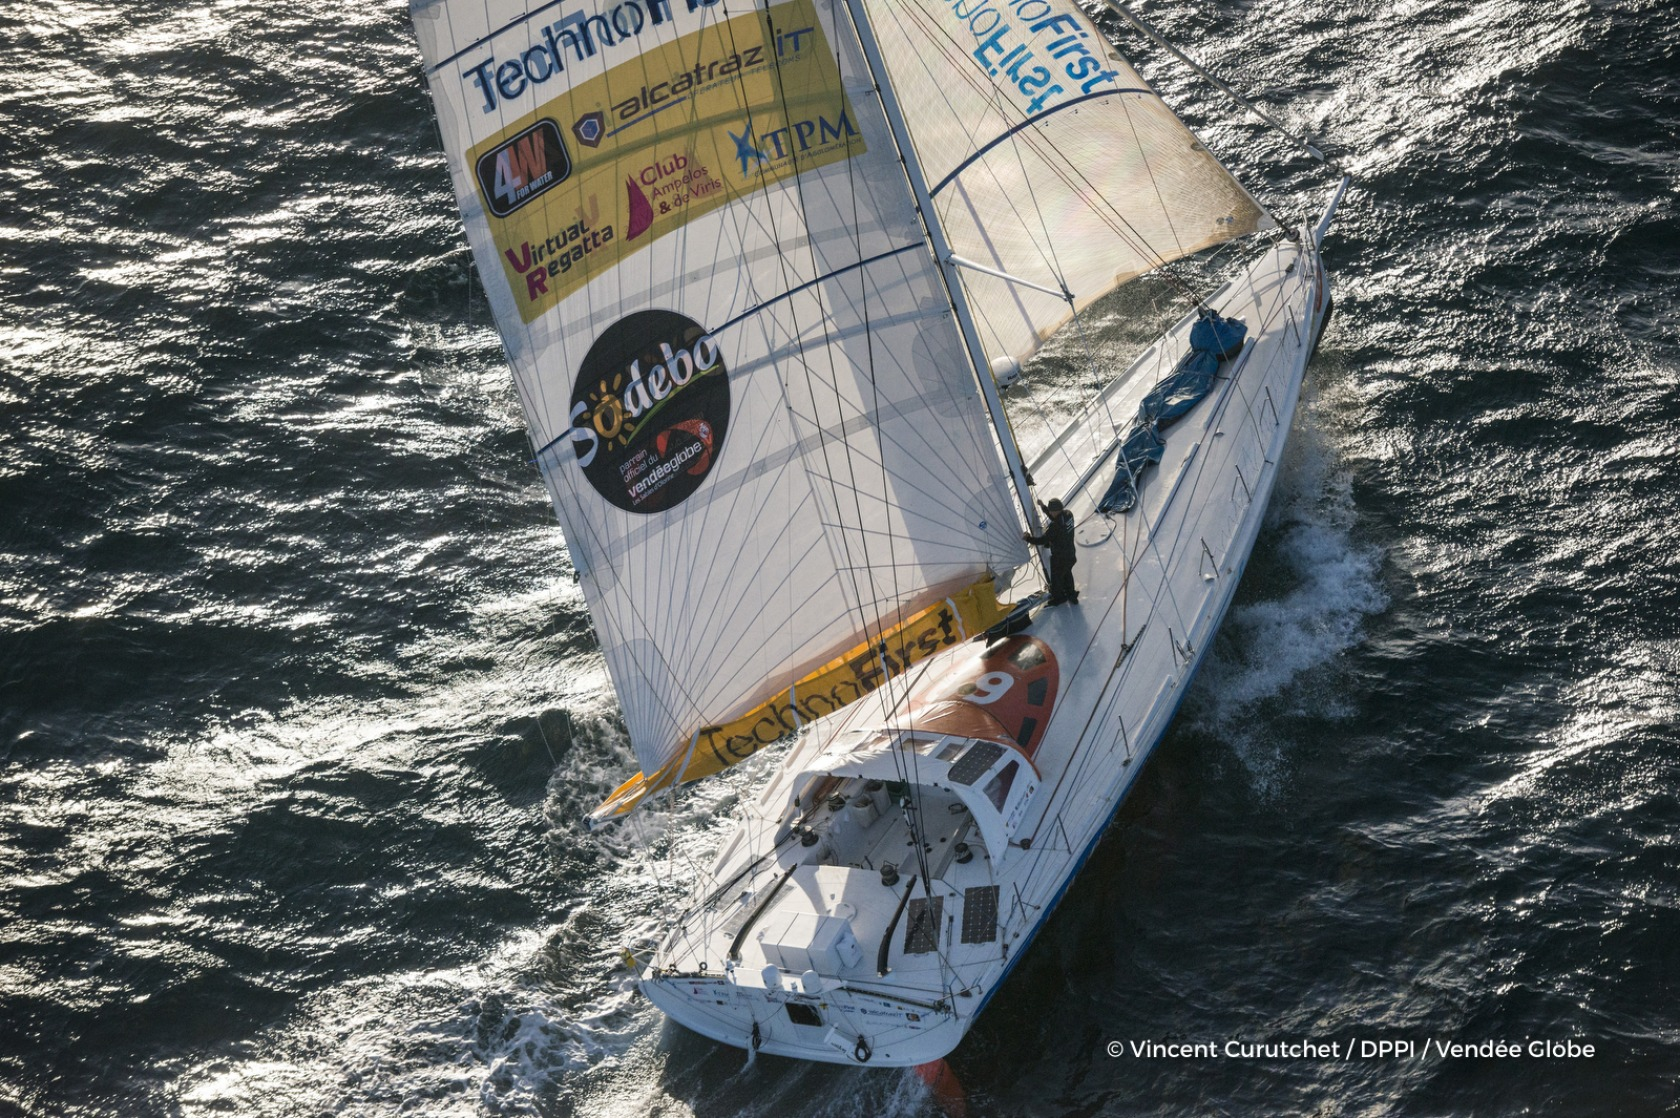 Technofirst Face Ocean, skipper Sebastien Destremau (FRA) Aerial illustration of start of the Vendee Globe, in Les Sables d'Olonne, France, on November 6th, 2016 - Photo Vincent Curutchet / DPPI / Vendée GlobeTechnofirst Face Ocean, skipper Sebastien De